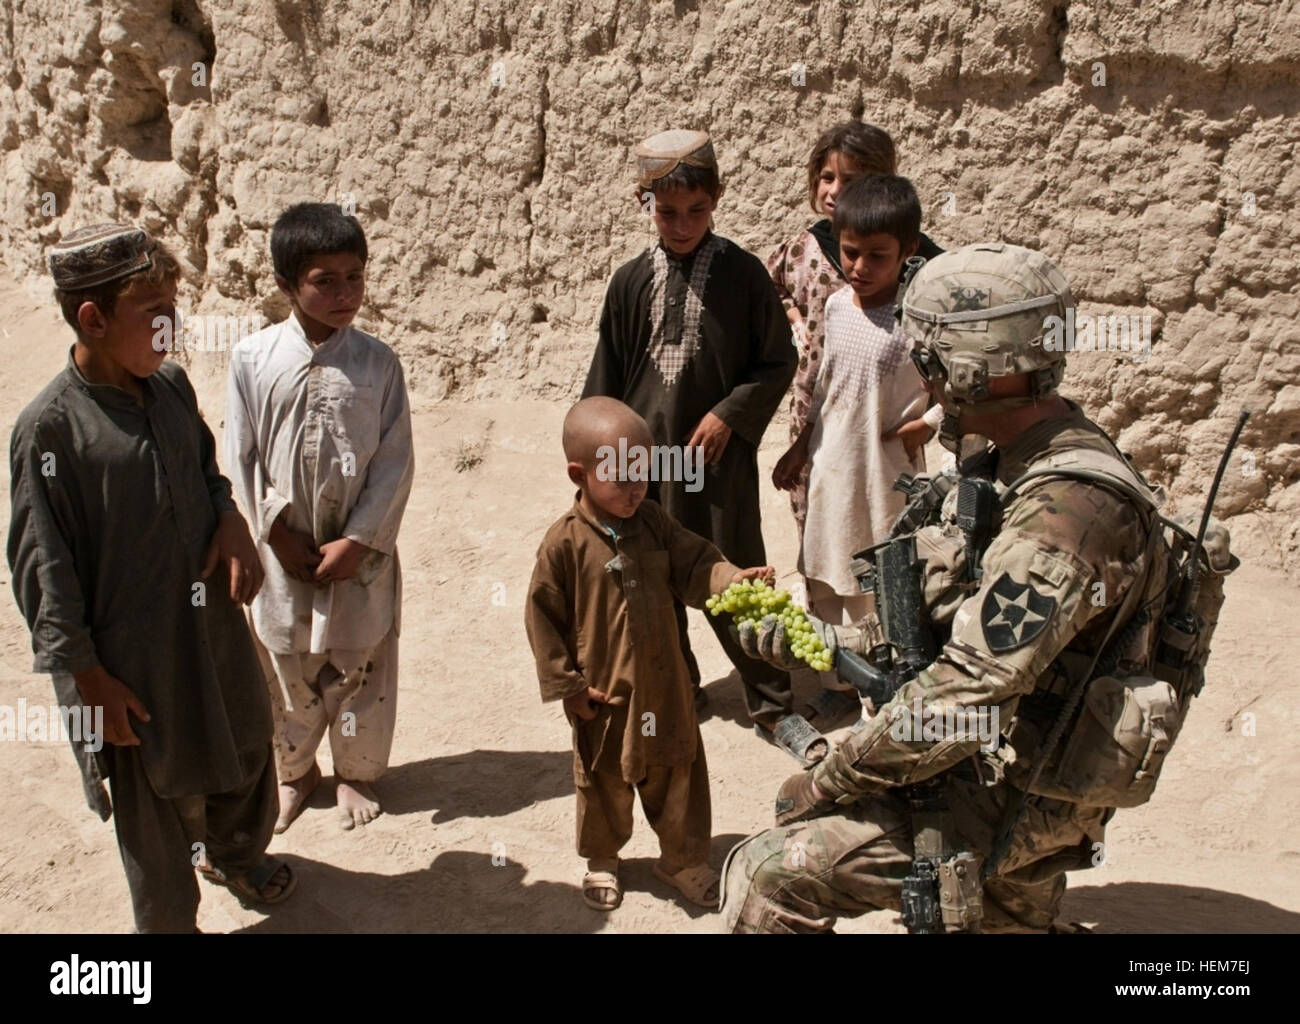 A soldier with 1st Platoon, Bravo Company, 1st Battalion 23rd Infantry Regiment, hands out grapes to curious local - Stock Image